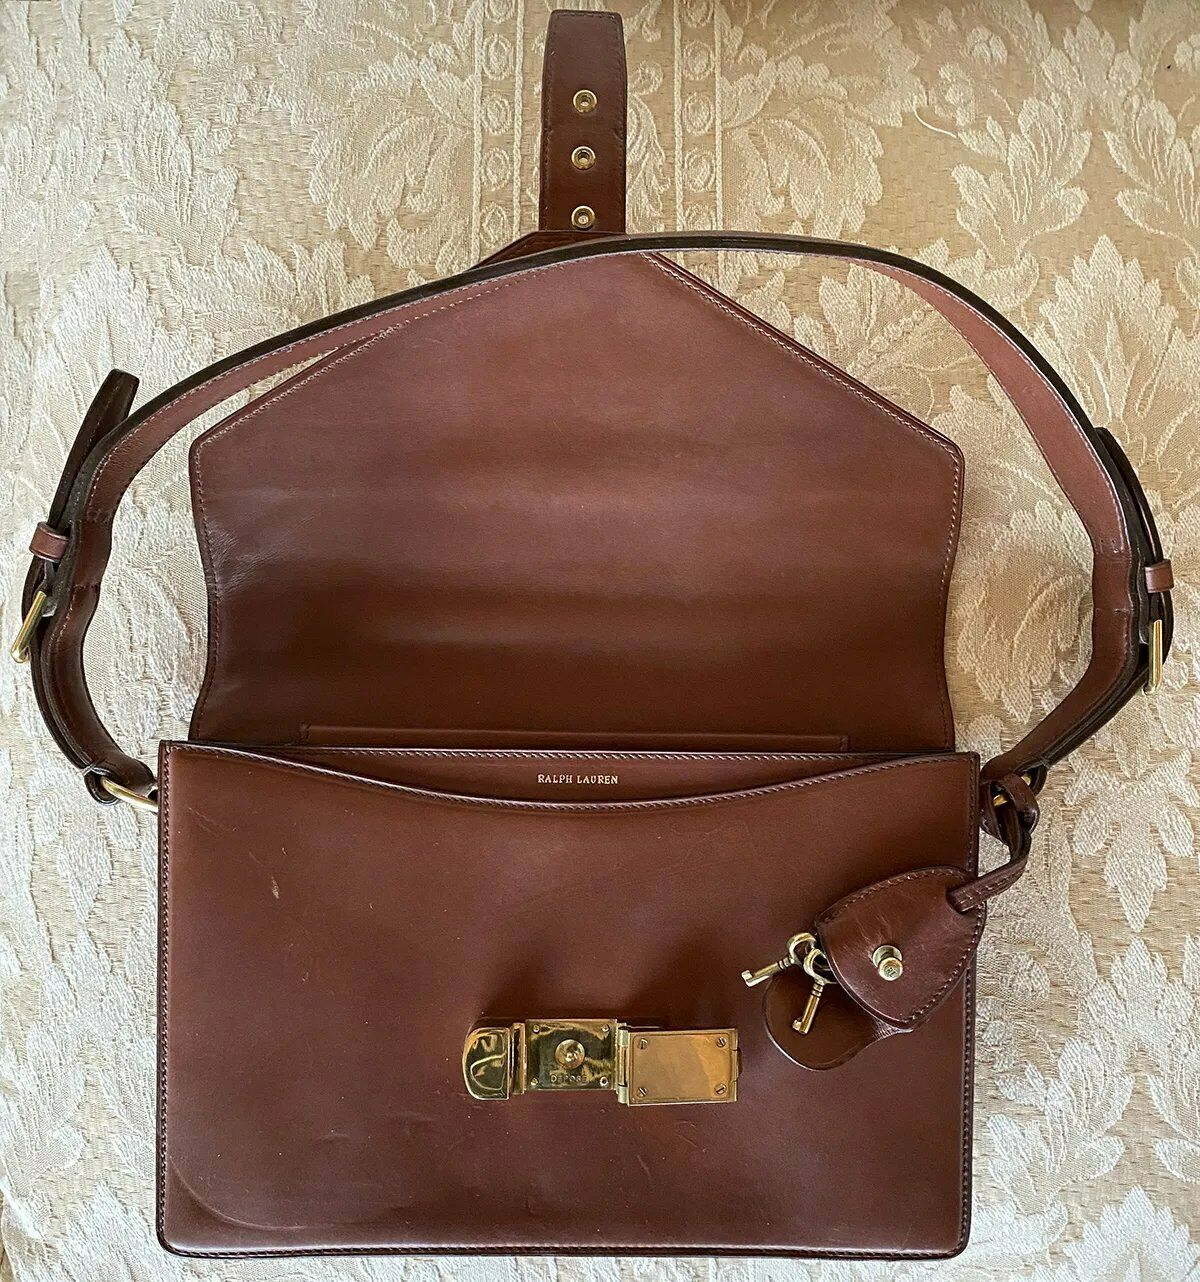 Vintage Ralph Lauren Saddle Leather Purse, Bag, Lock & Keys, Orig Tag: $2600